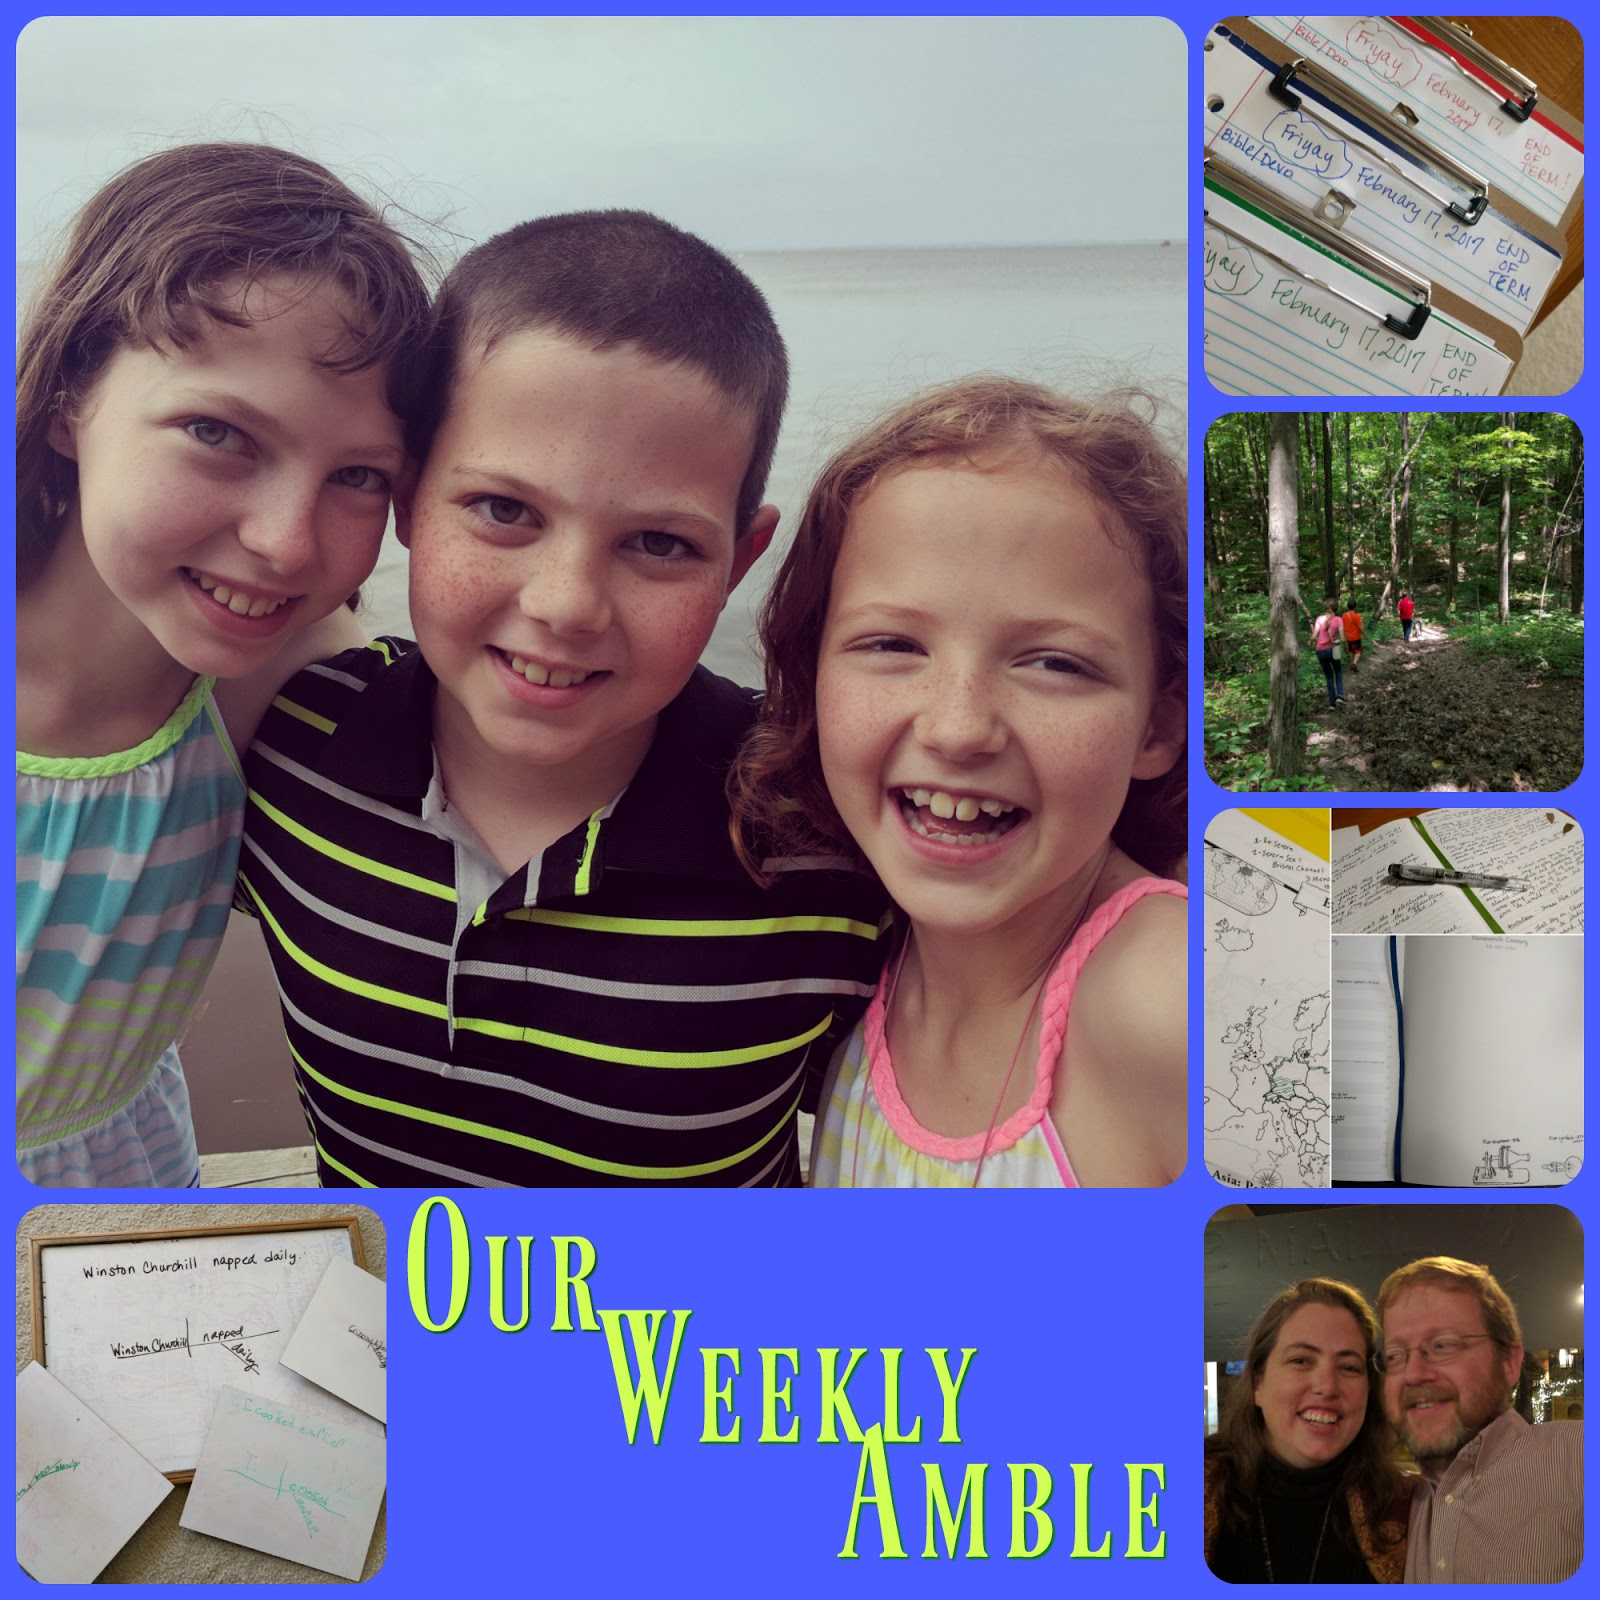 Our Weekly Amble for March 6-10, 2017